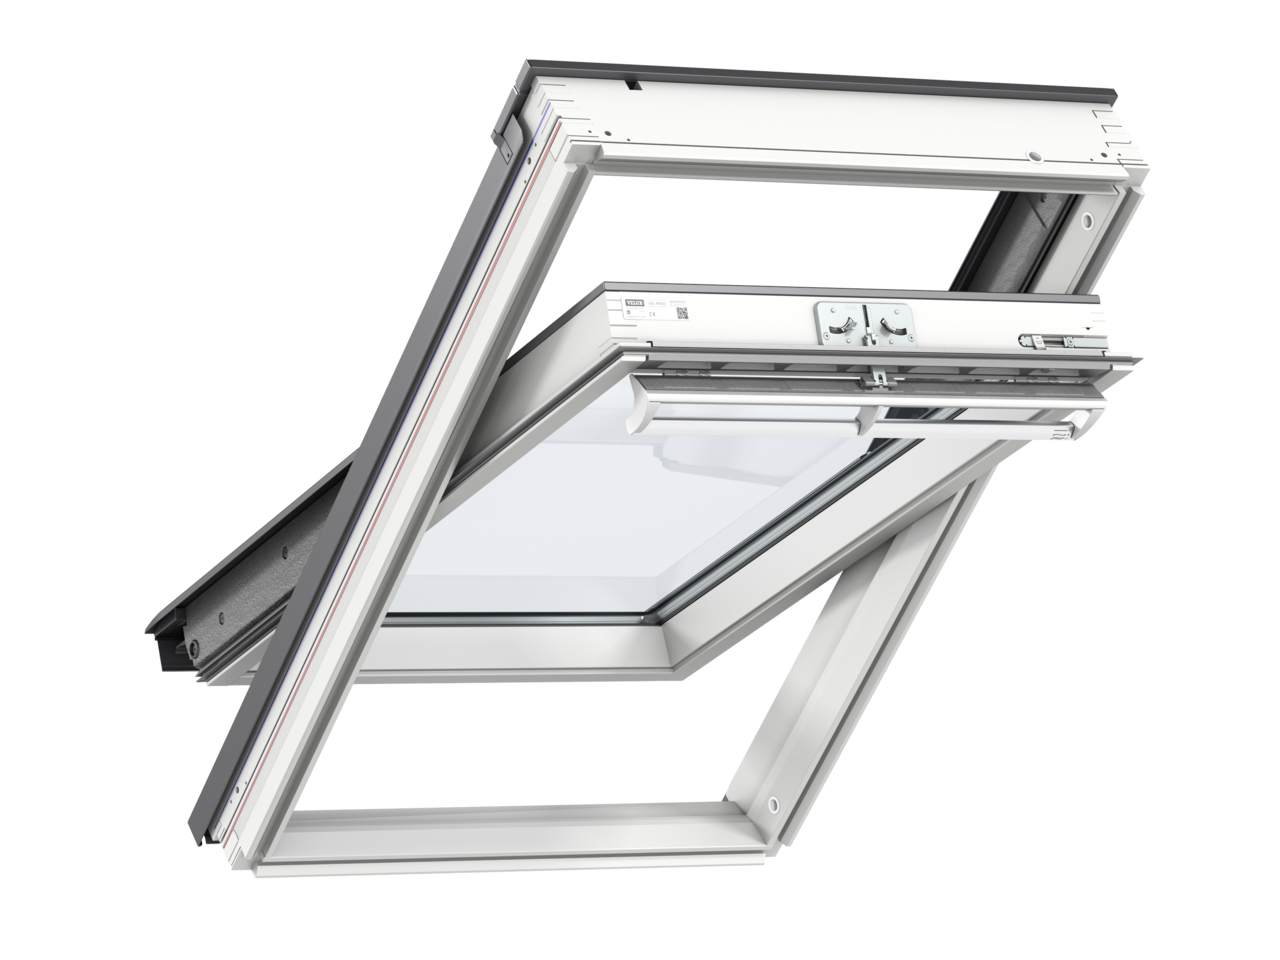 Velux GGL SK06 1140 x 1180mm Centre Pivot 70QPane Roof Window - White Painted